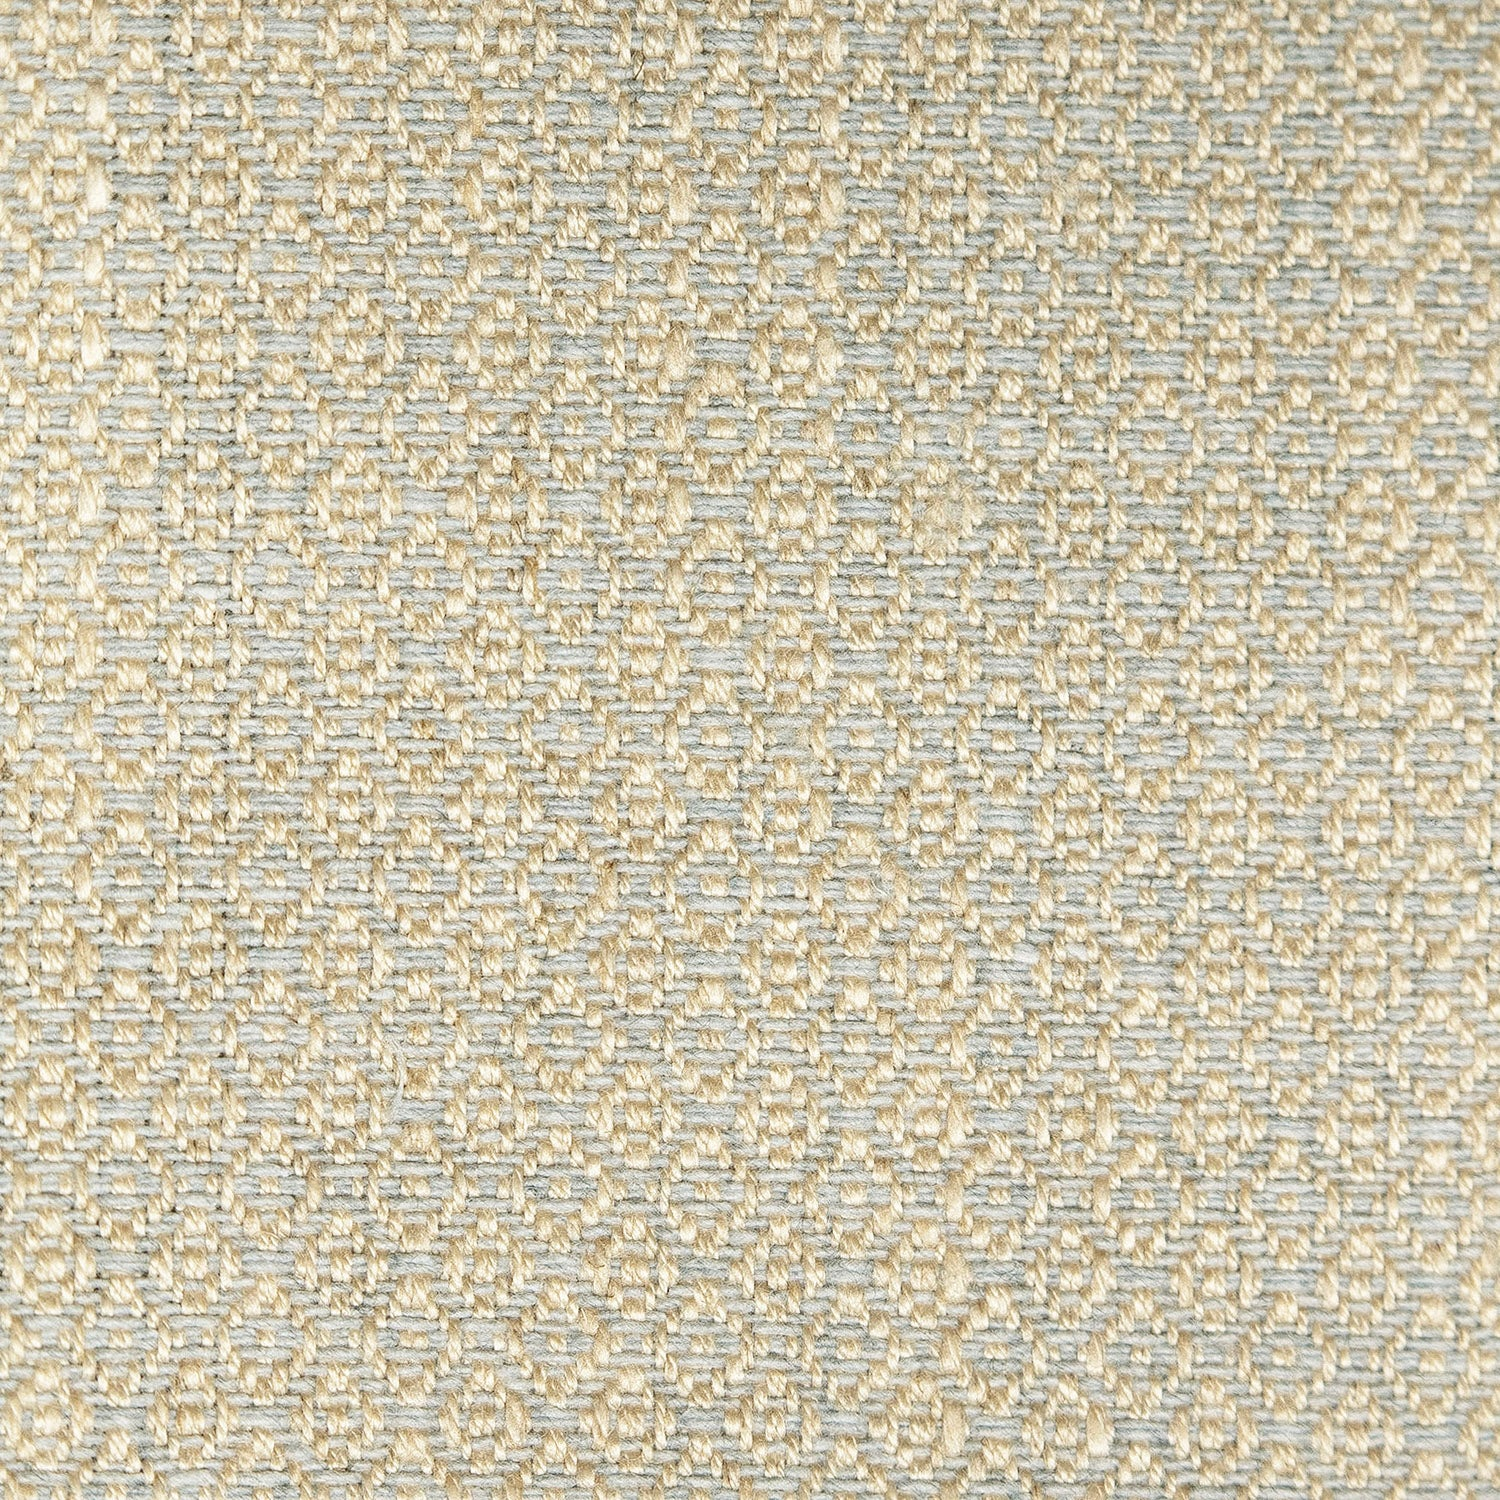 Fabric sample of a light grey and neutral weave fabric with a small diamond design and stain resistant finish for curtains and upholstery